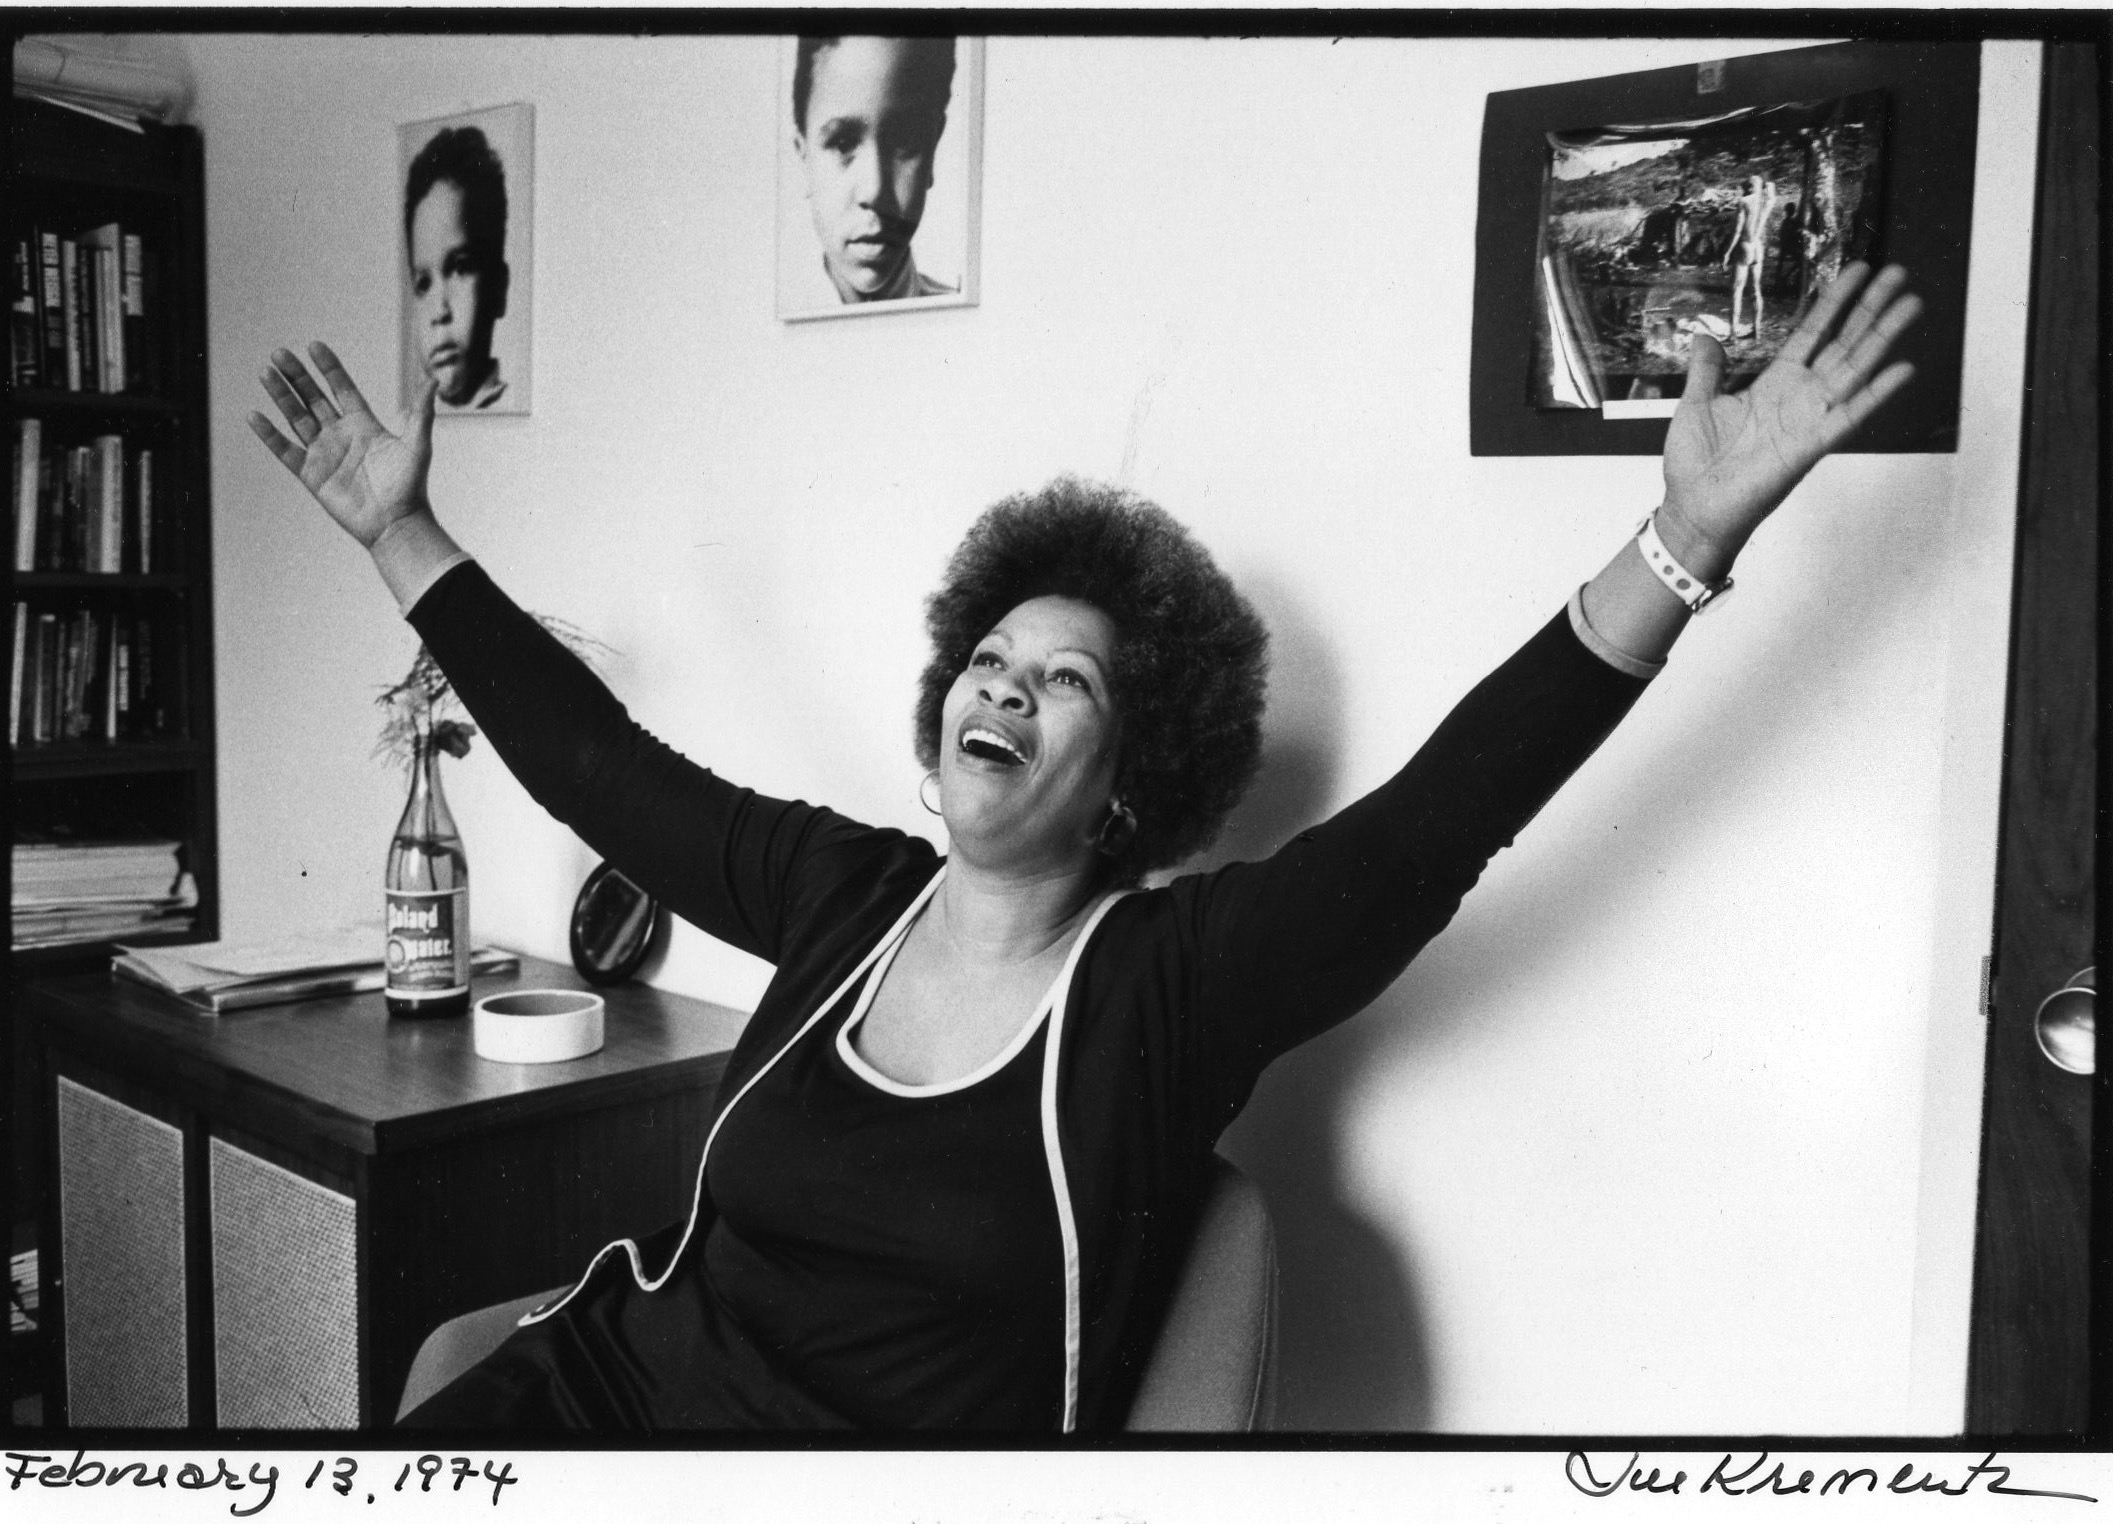 Morrison, in her office at Random House, on Feb. 13, 1974